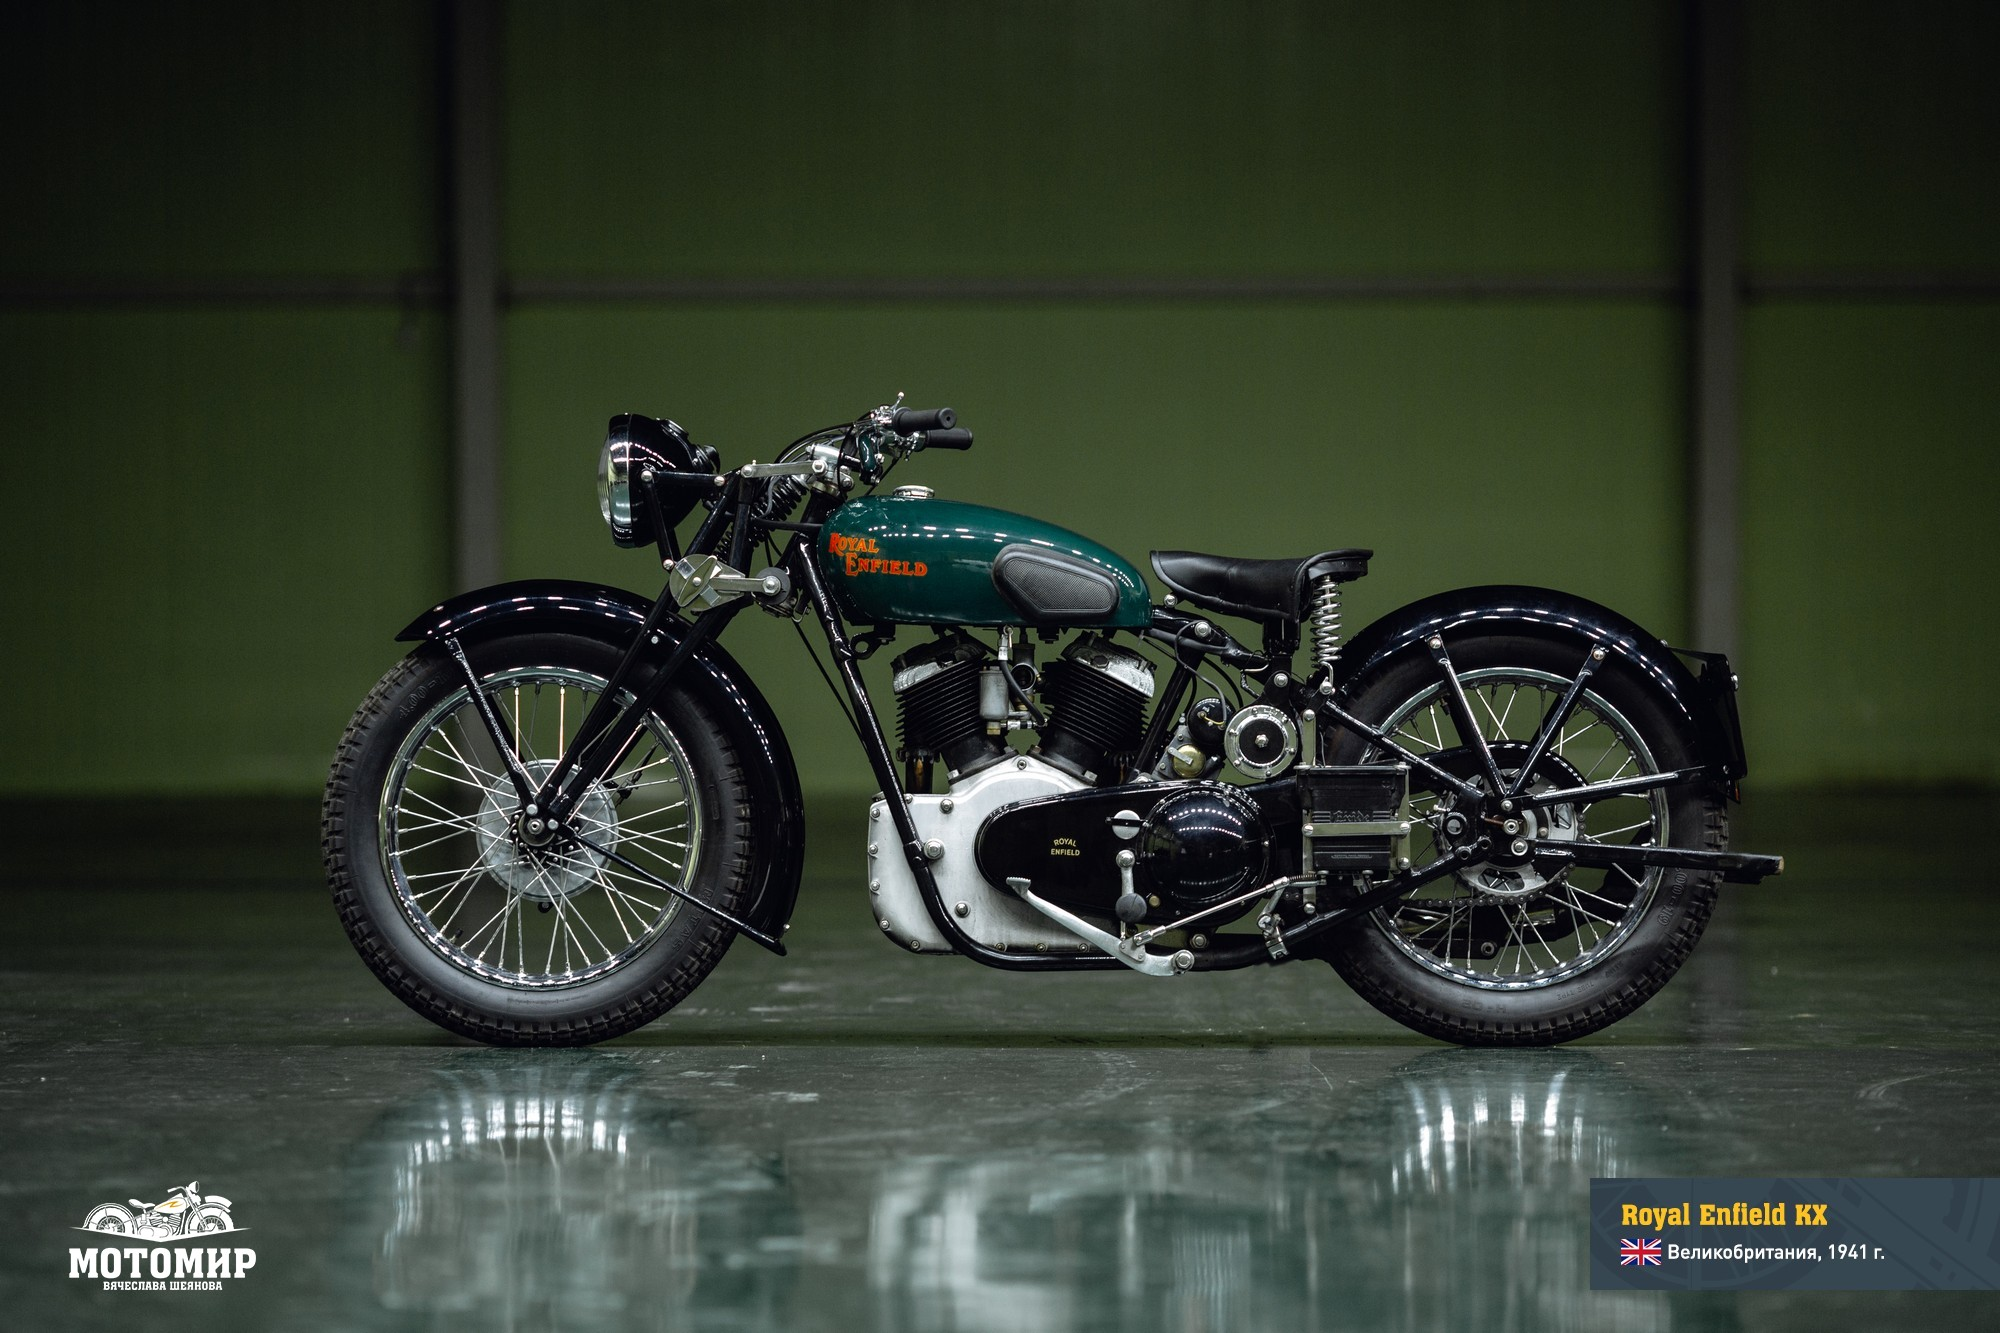 royal-enfield-kx-201601-web-01